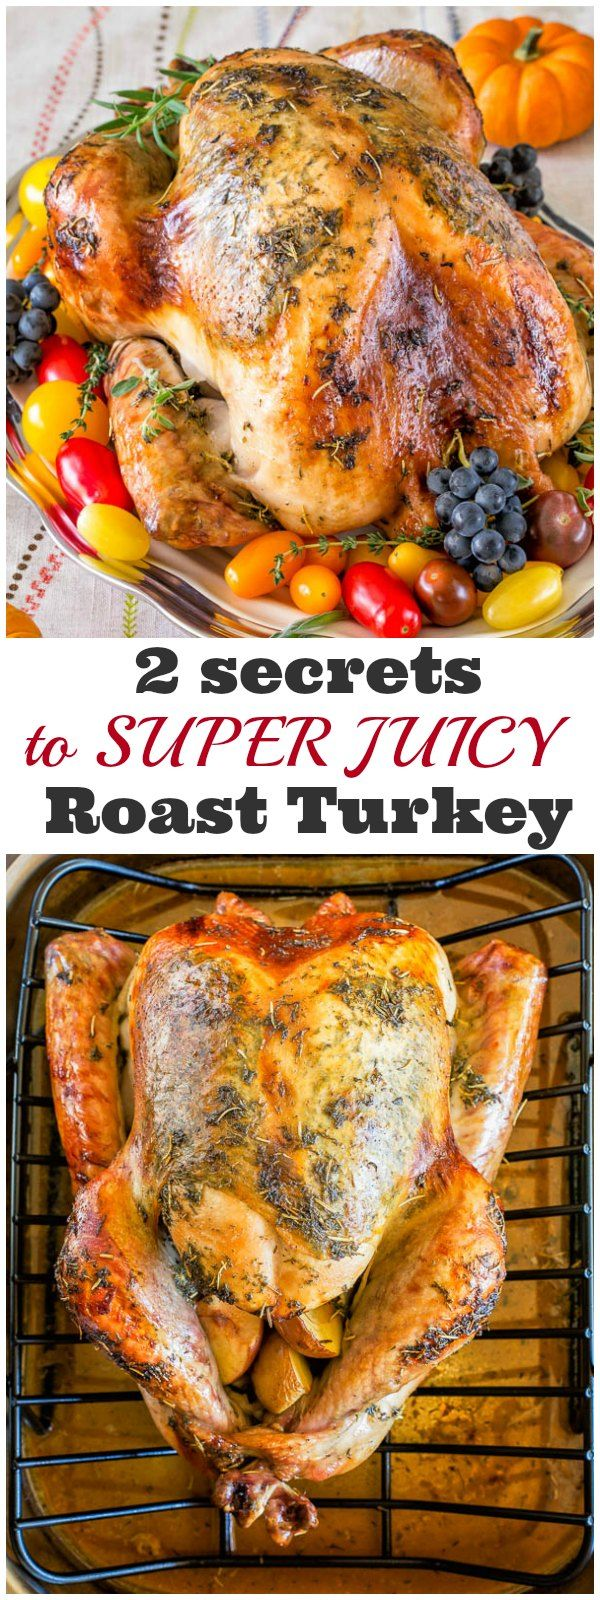 Super Juicy No Brine Roast Turkey ~ Sharing my secret to super juicy no brine roast turkey recipe that will make you a hero of your Thanksgiving dinner. It involves a bottle of champagne and melted butter! : Sweet & Savory by Shinee